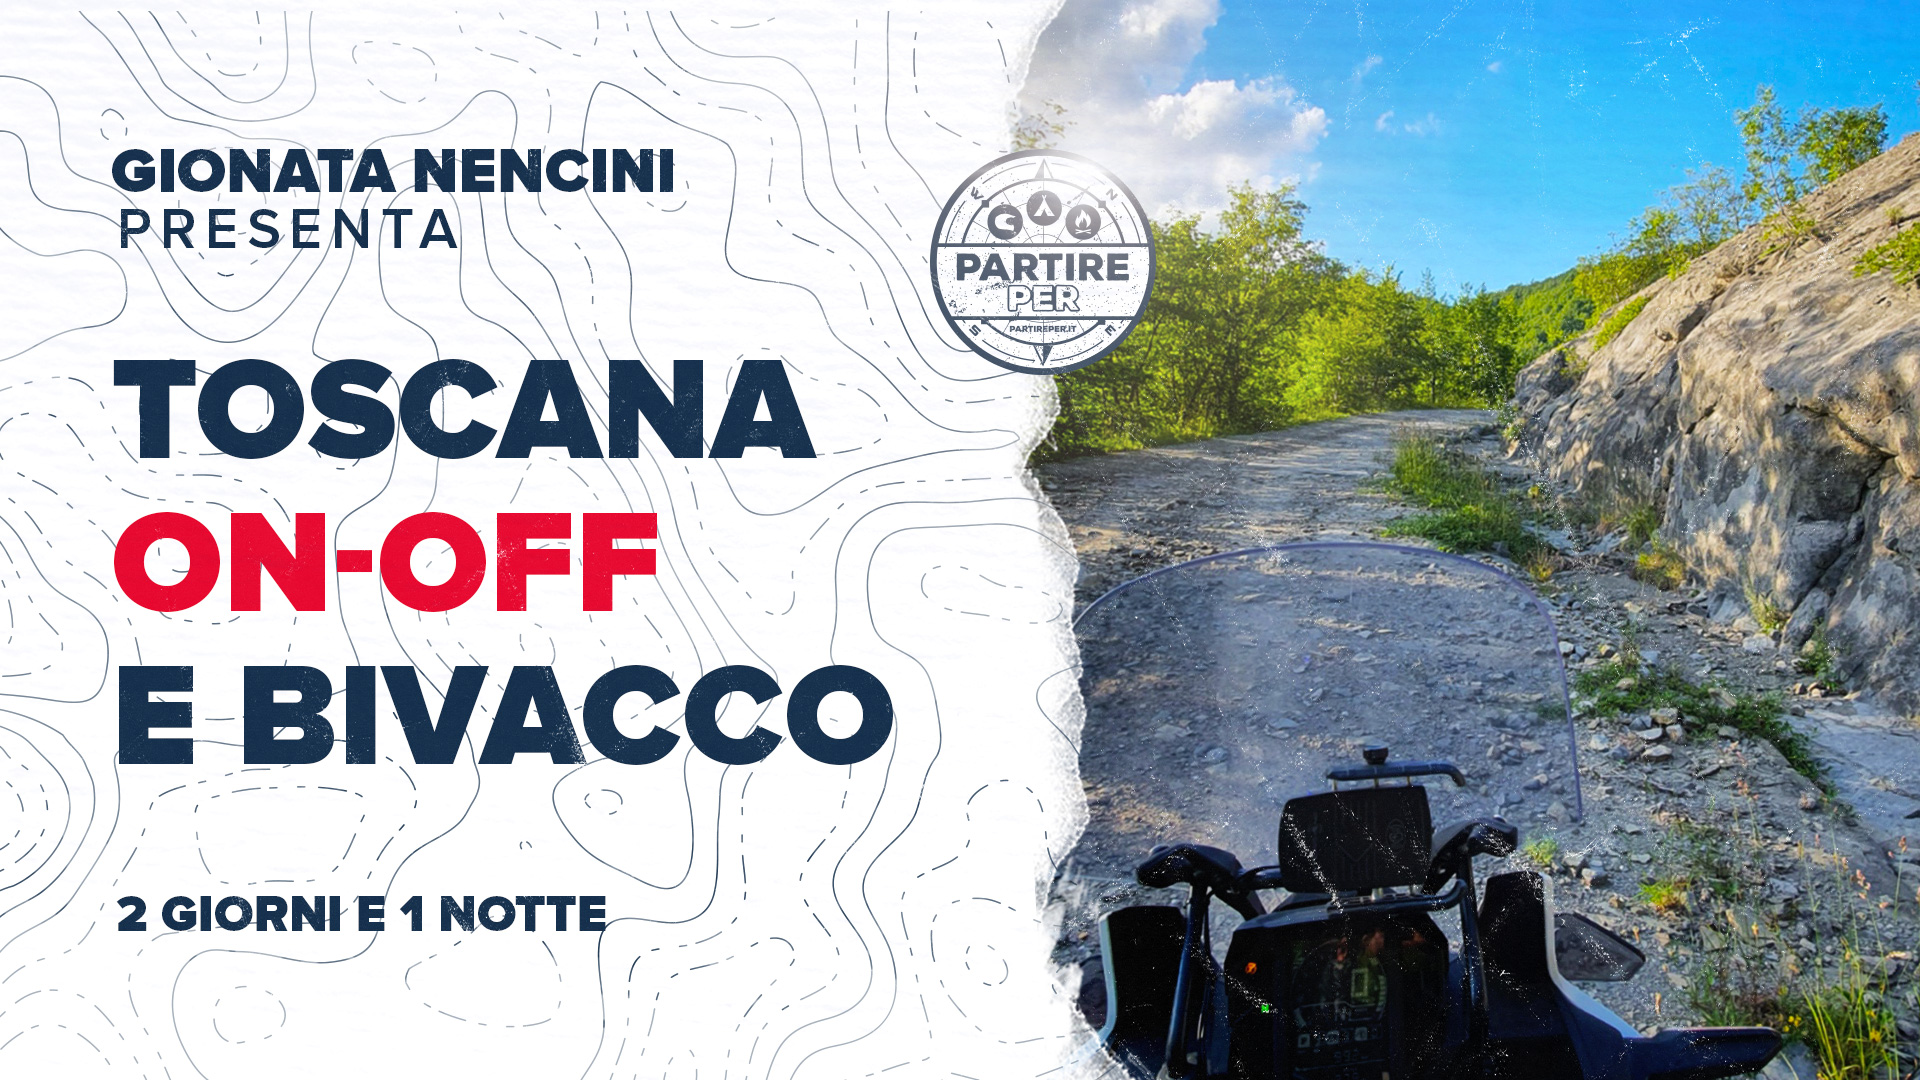 gionata-nencini-ride-true-adv-partireper-fine-settimana-on-off-toscana-bivacco-avventura-seconda-data